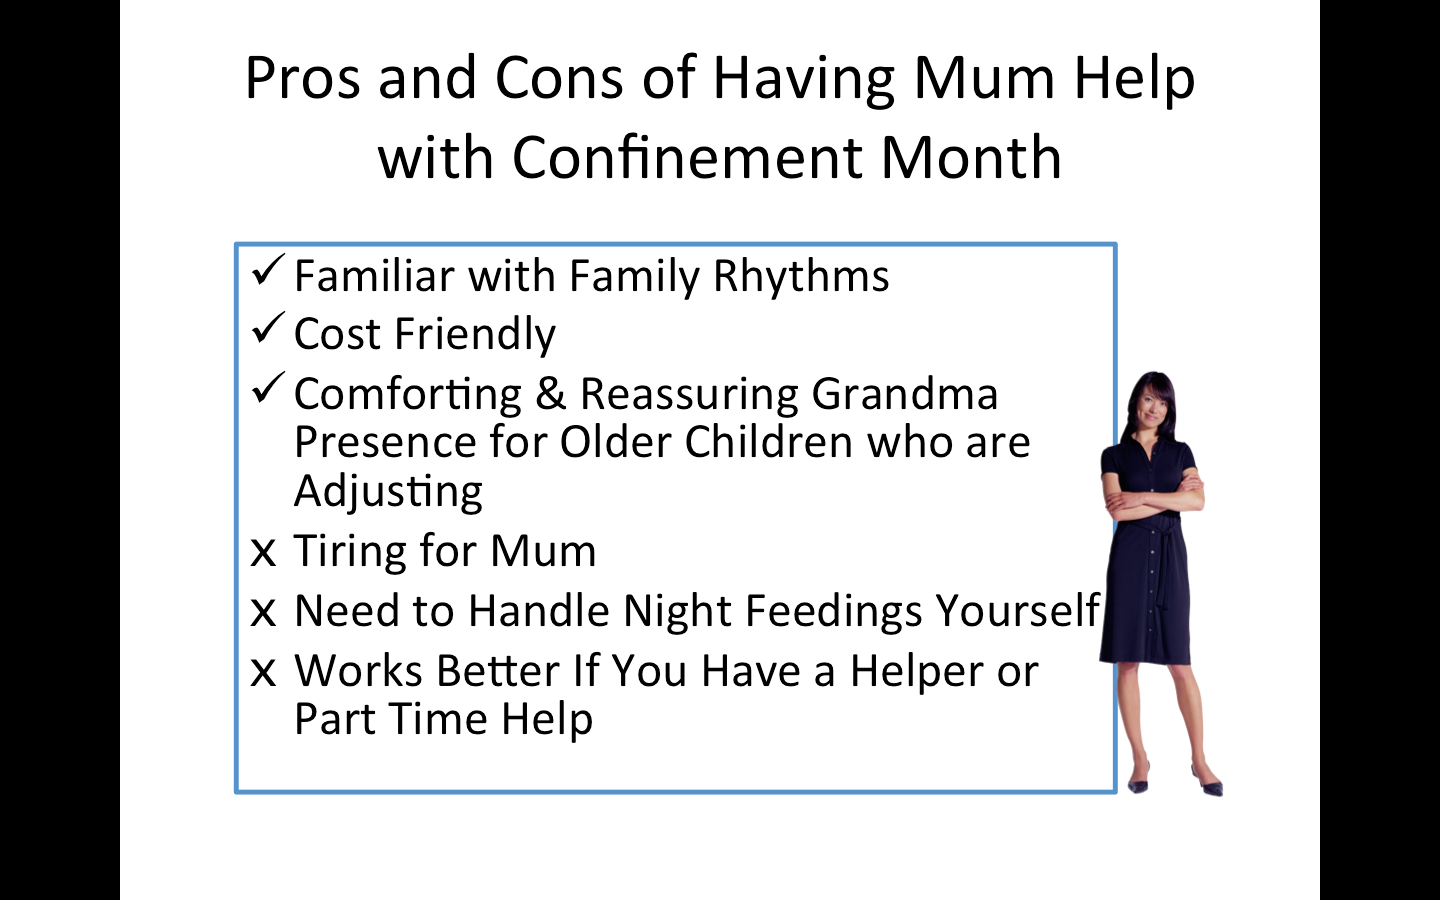 Pros and Cons of Having Mother's Help with Confinement Month